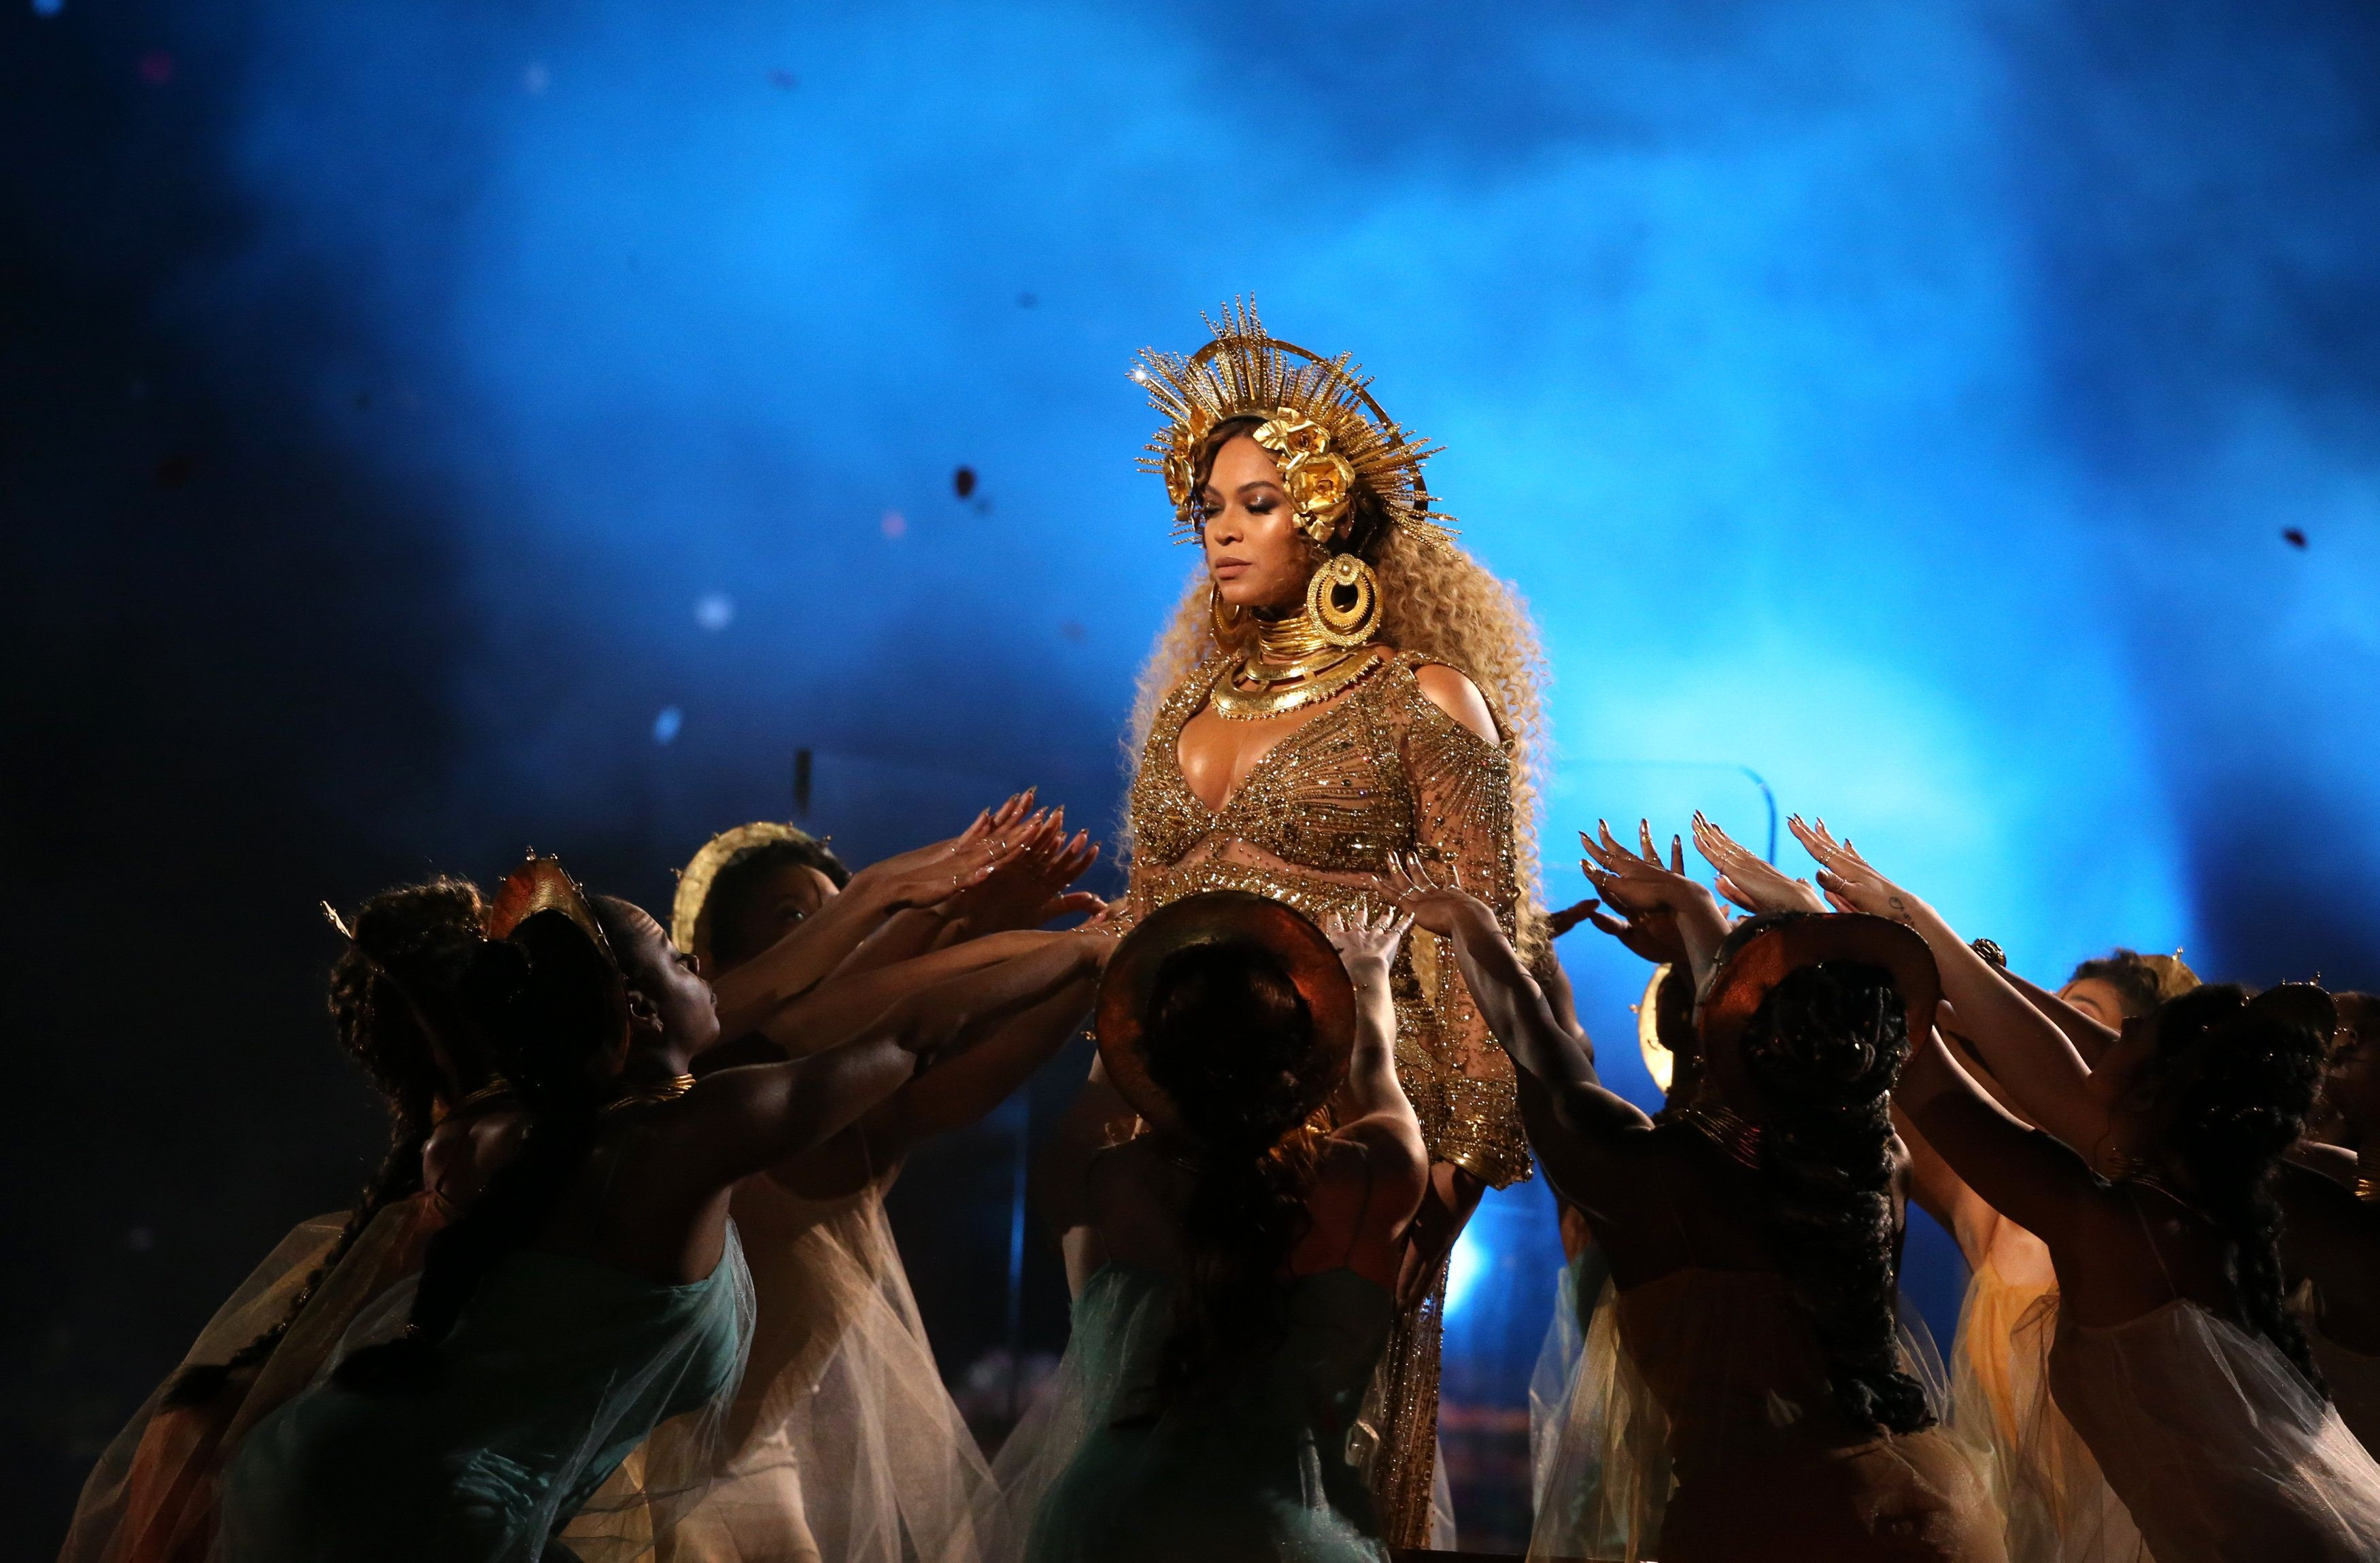 Beyoncé performance at the 59th Annual Grammy Awards last year in Los Angeles incorporated imagery from African, Hindu